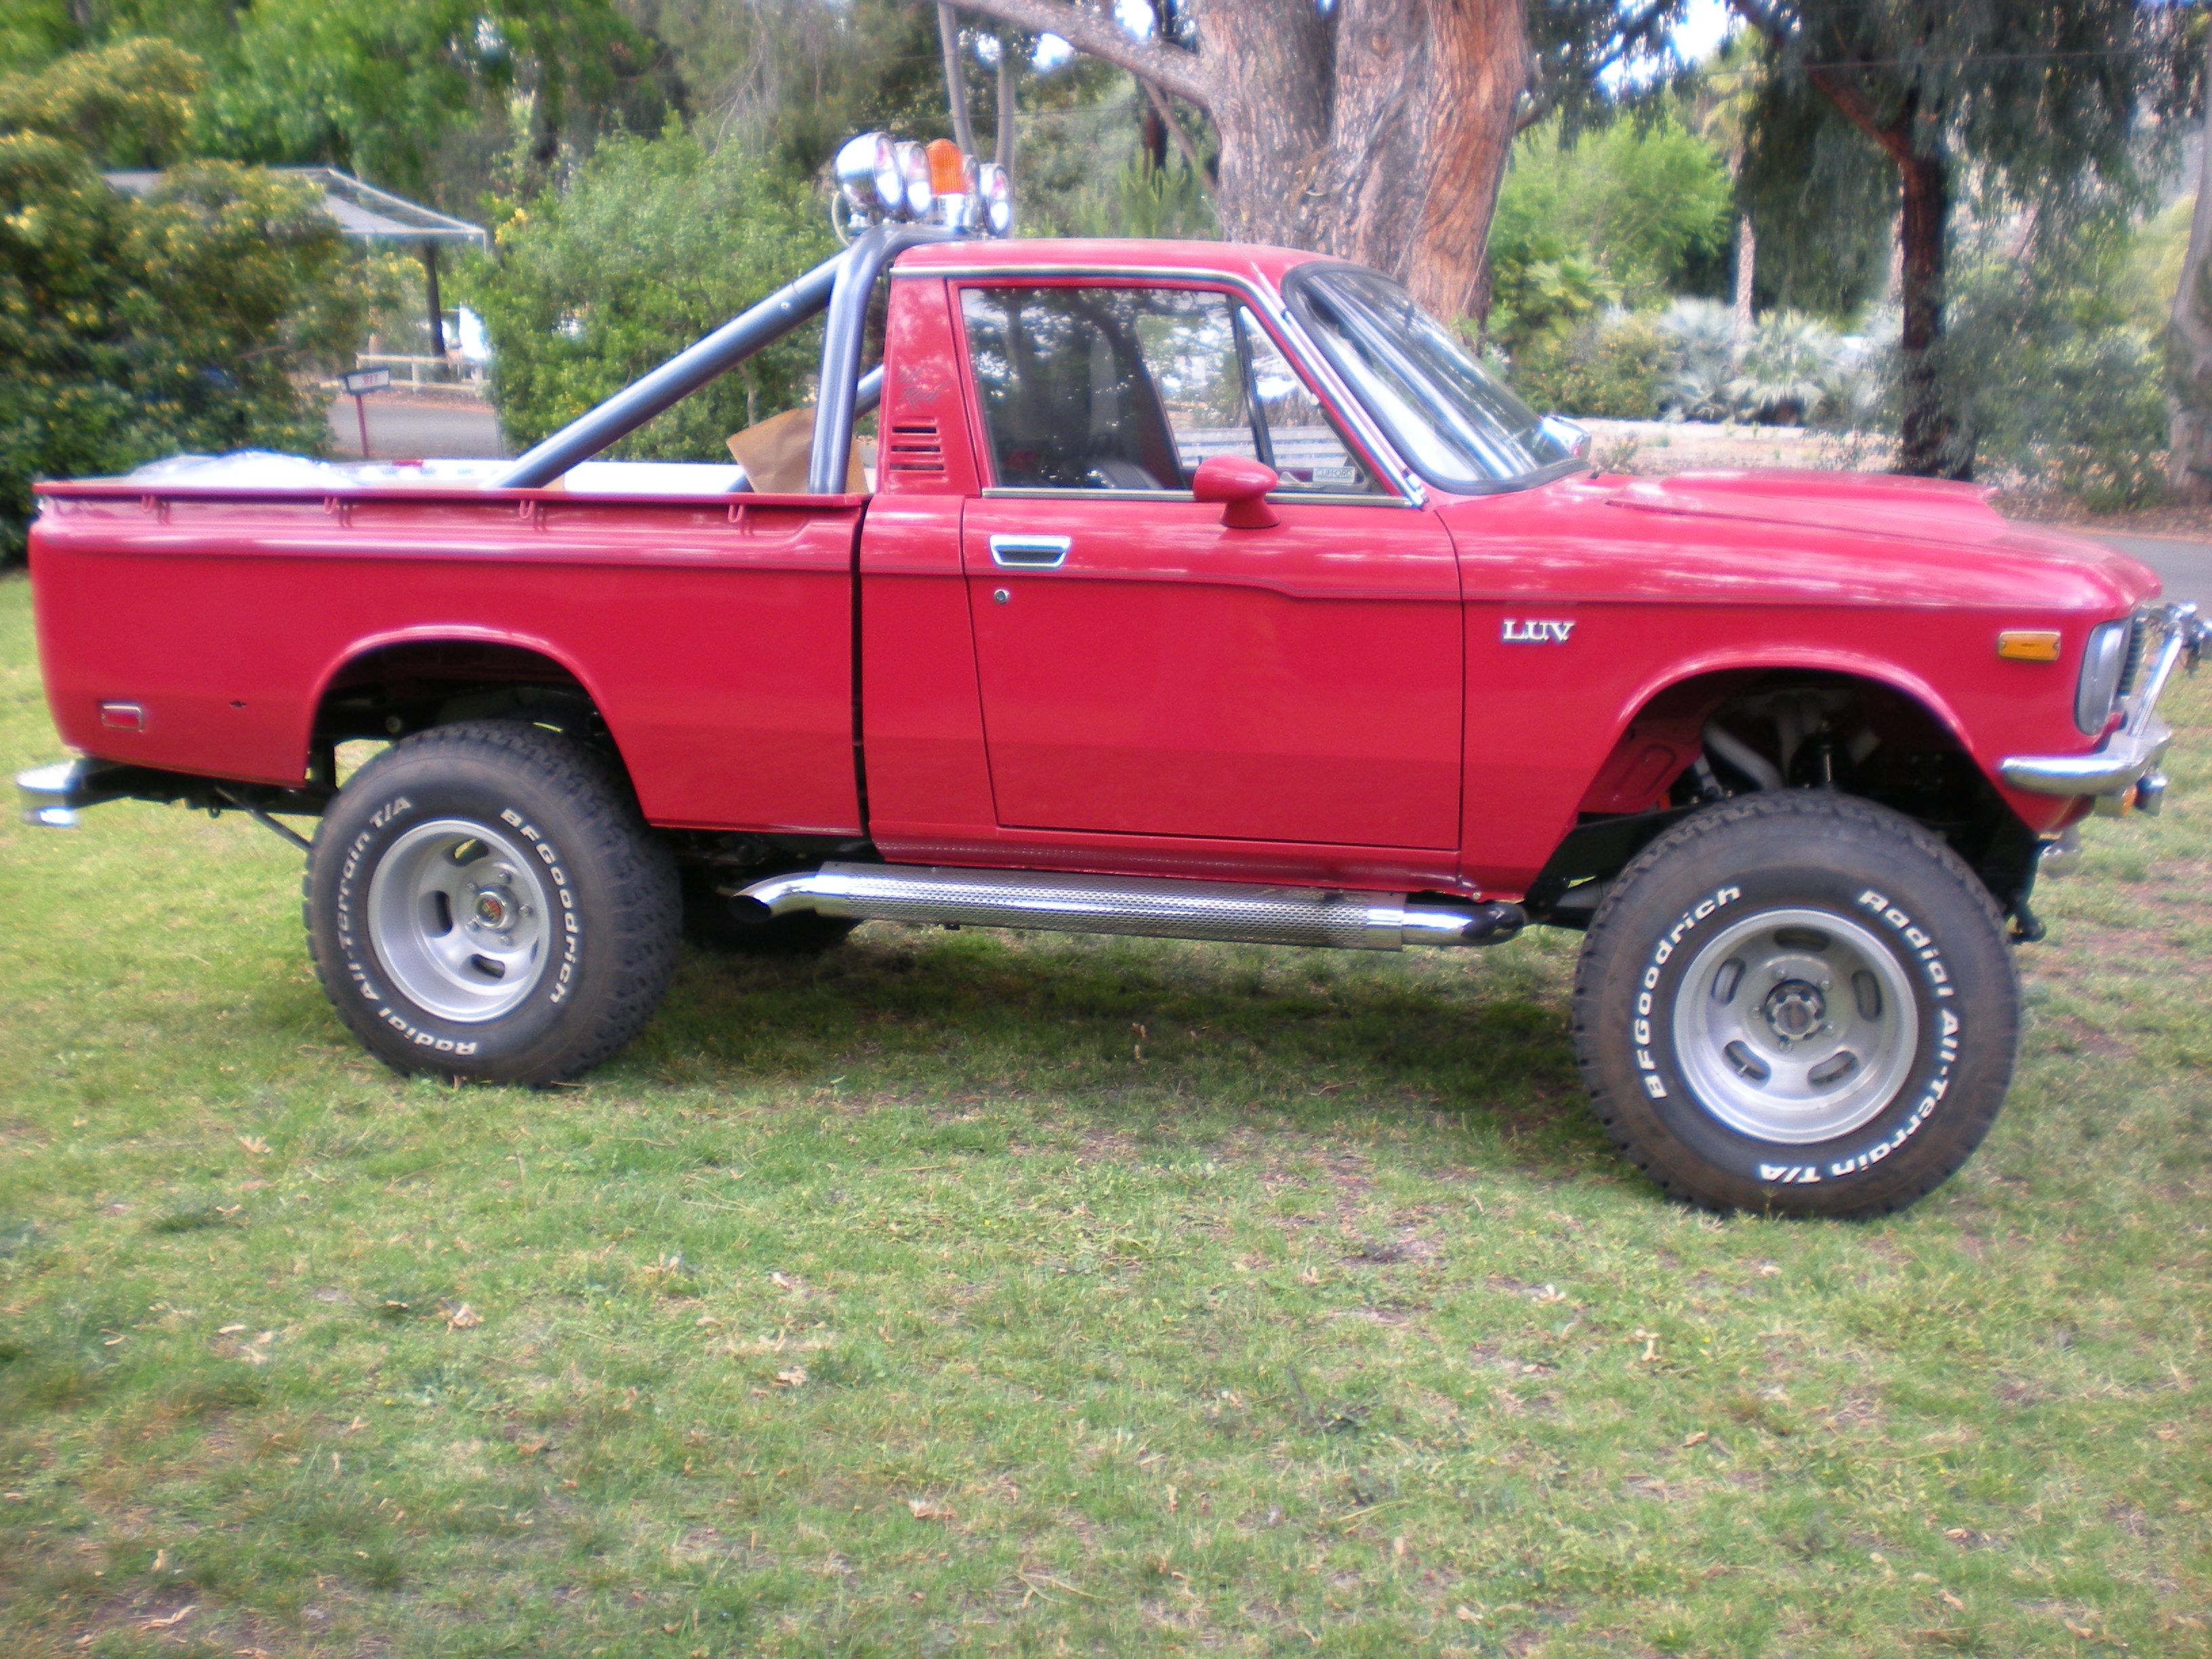 1972 Chevrolet Luv Information And Photos Momentcar 1976 Chevy Truck 13